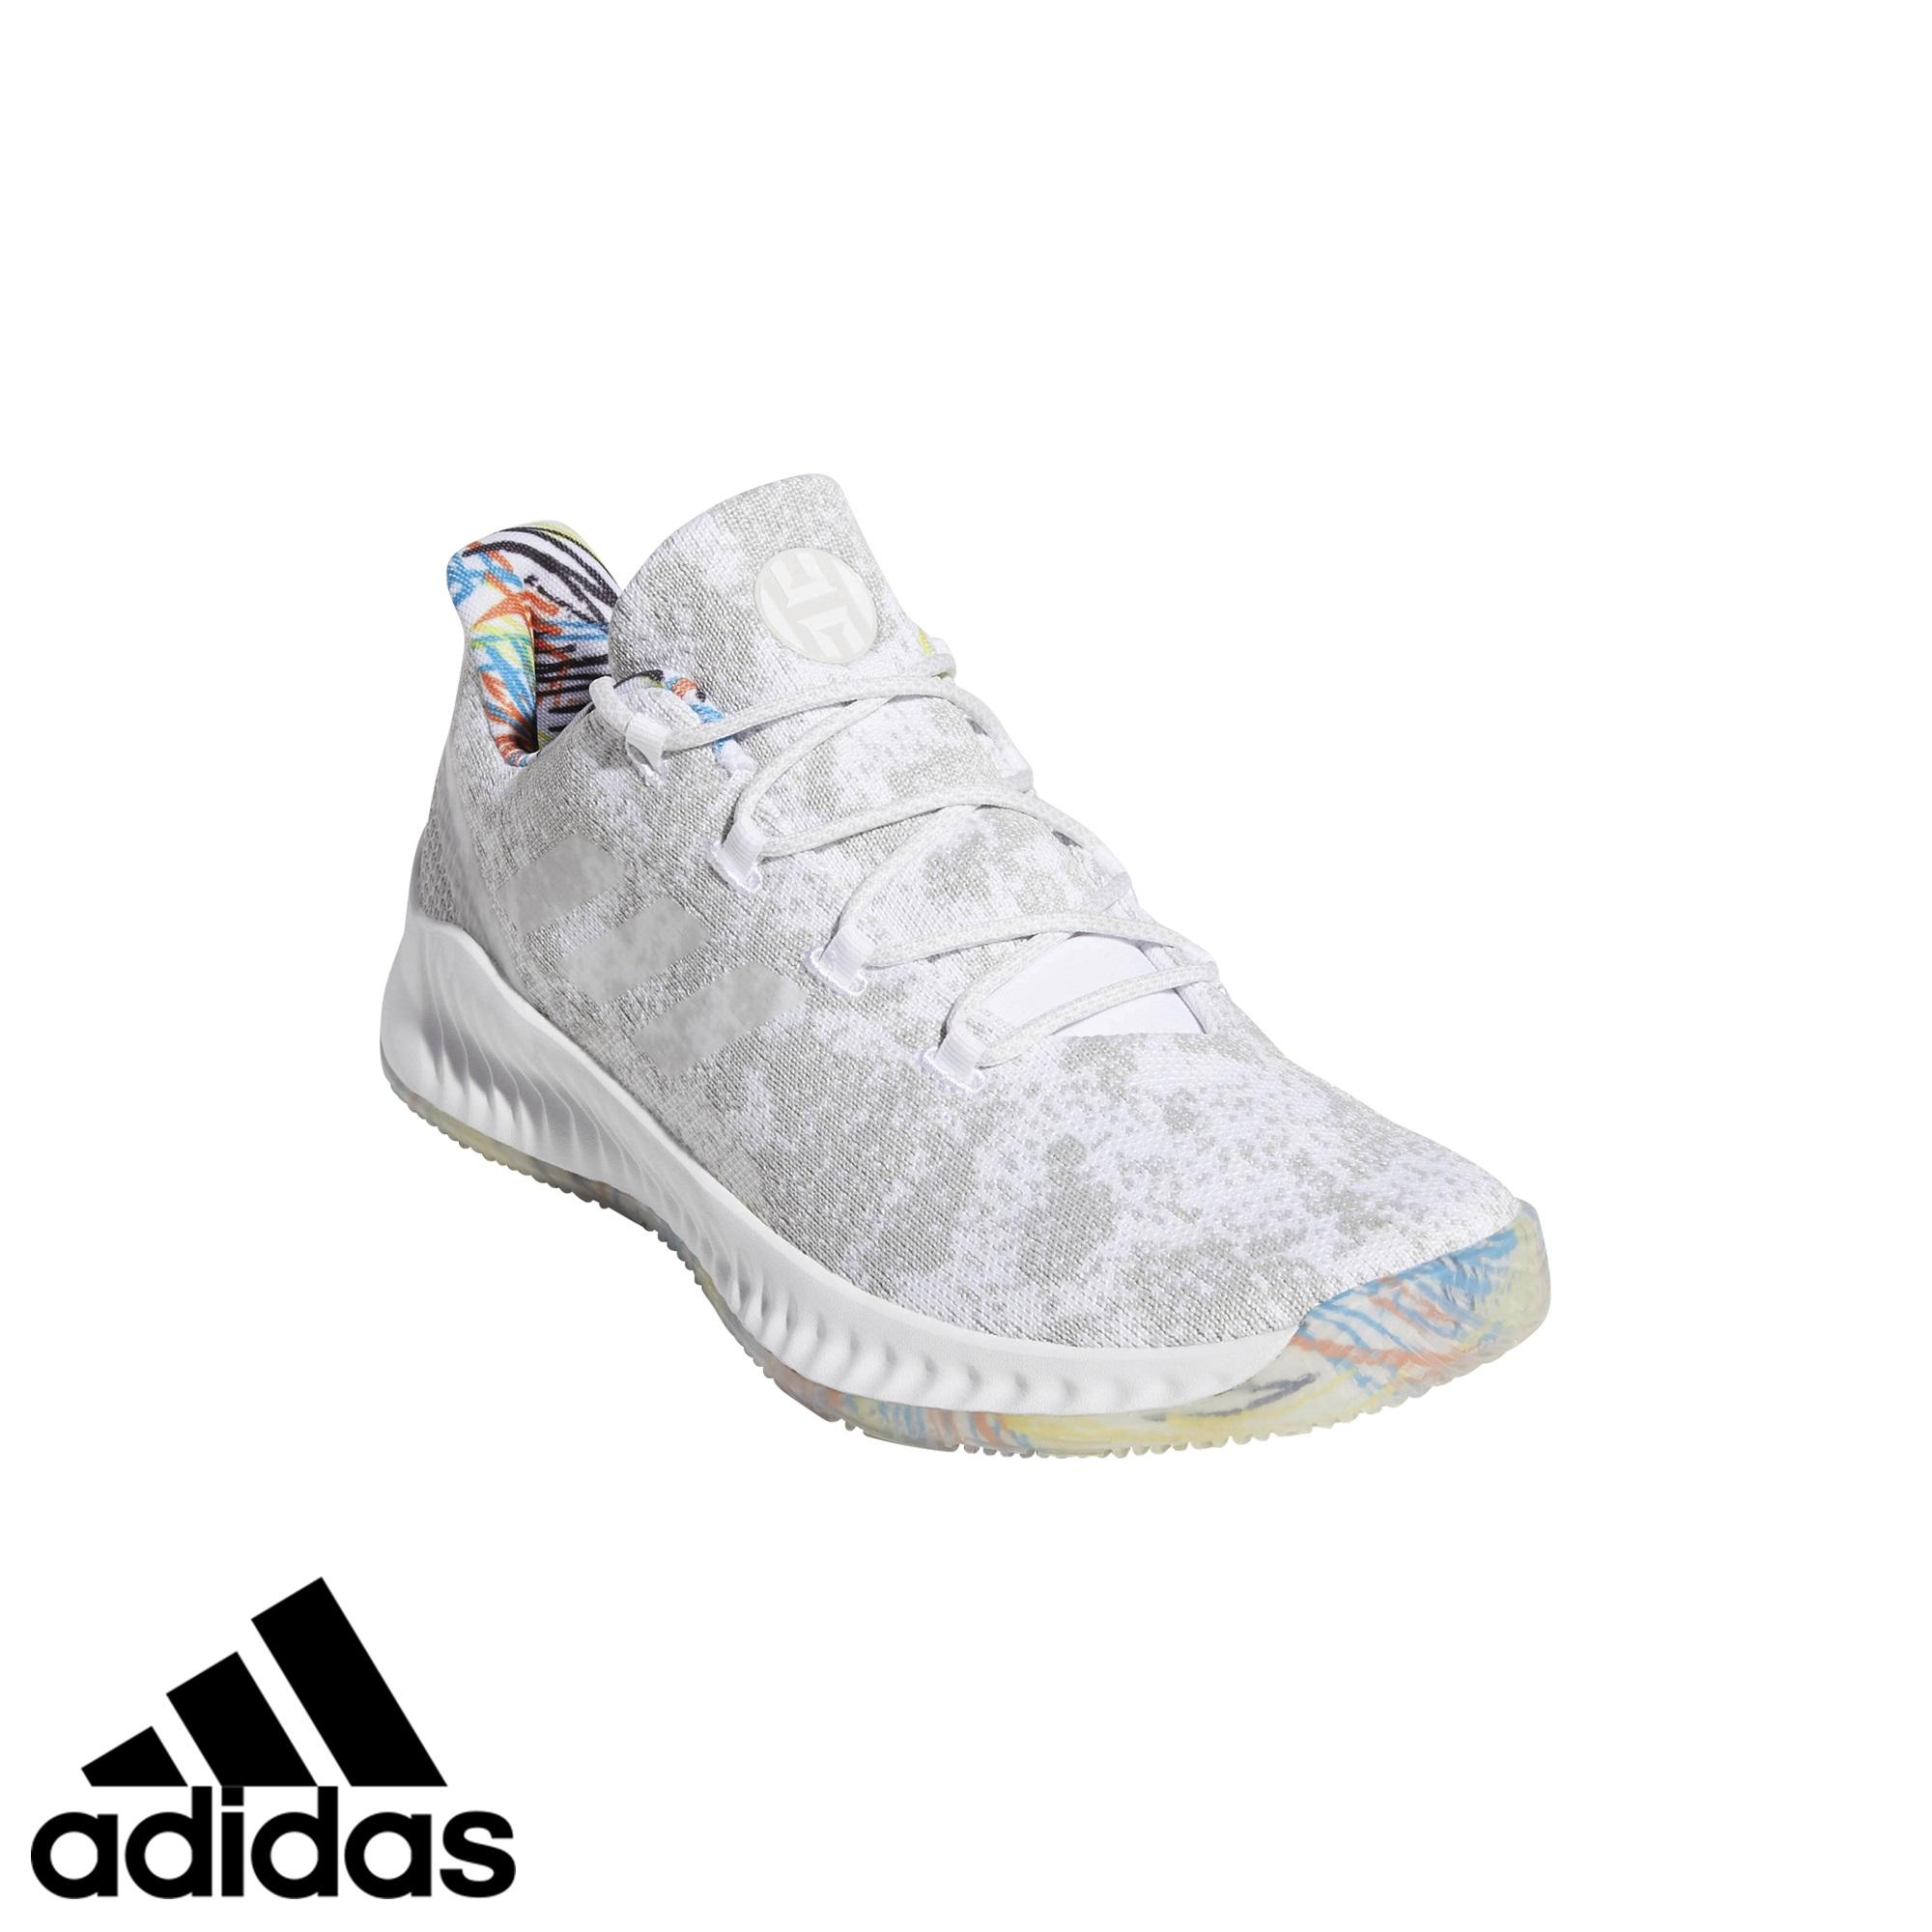 4d5592fbc5578 Adidas Sports Shoes Philippines - Adidas Sports Clothing for sale - prices    reviews